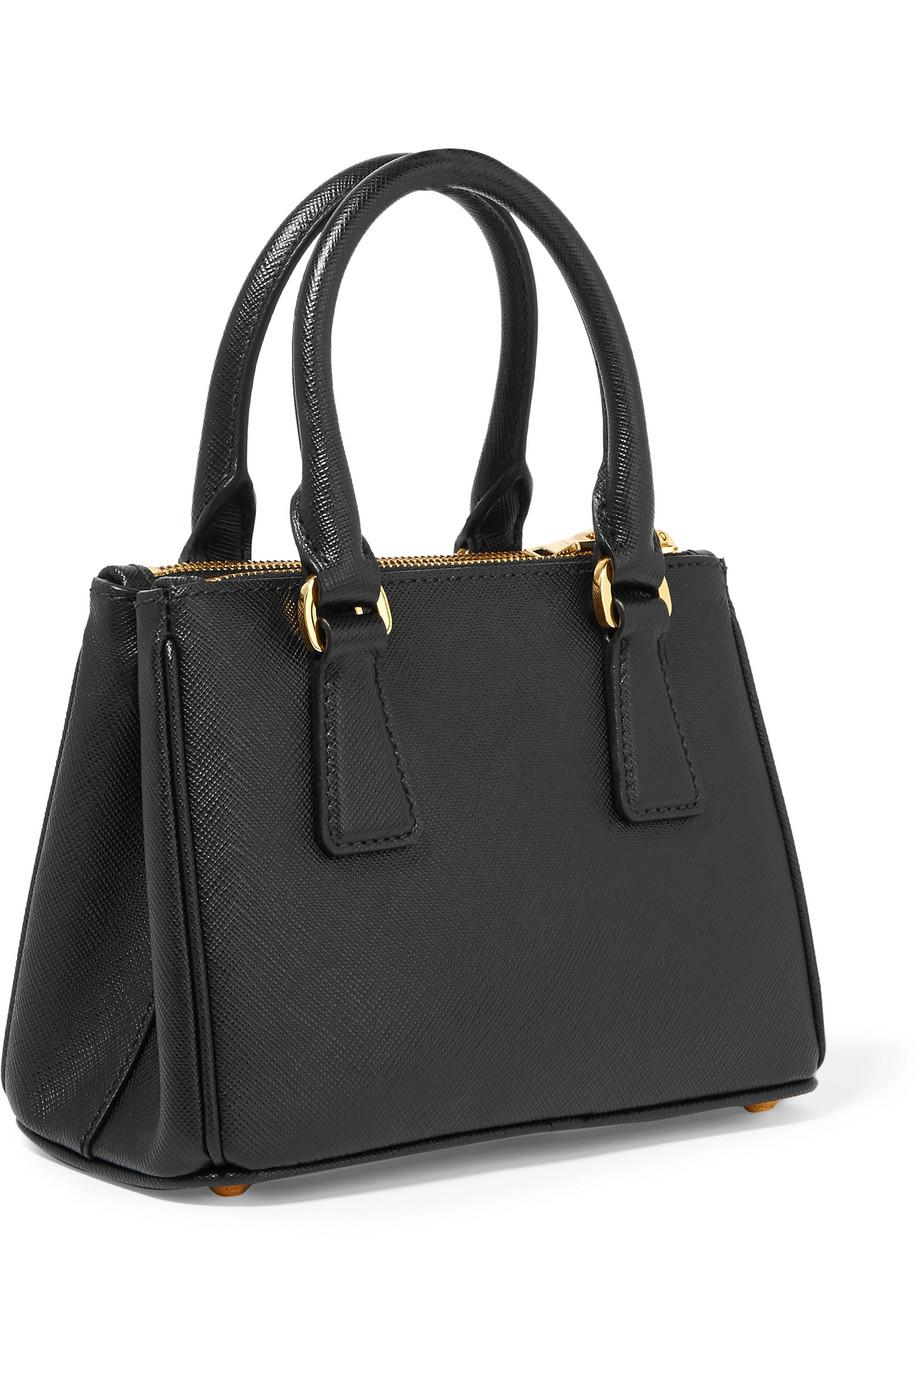 7b7fcc81950bb7 Prada Galleria Baby Textured-Leather Tote in Black - Lyst